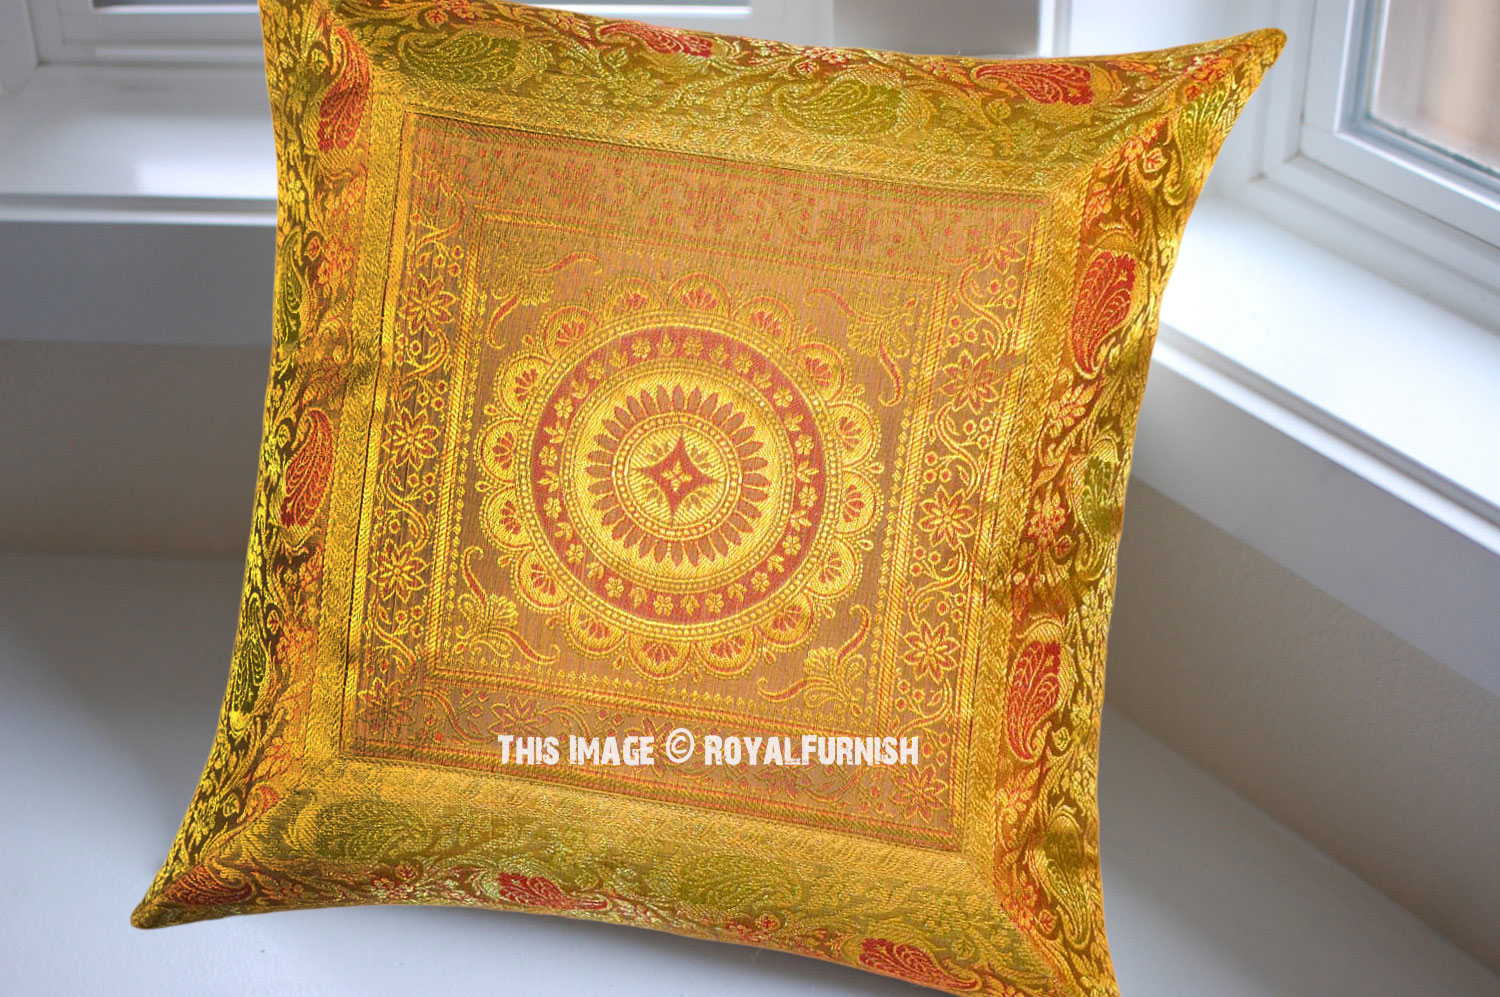 Yellow Silk Decorative Pillows : Yellow Flower Medallion Circle Outdoor Decorative Silk Throw Pillow Cover 16X16 Inch ...